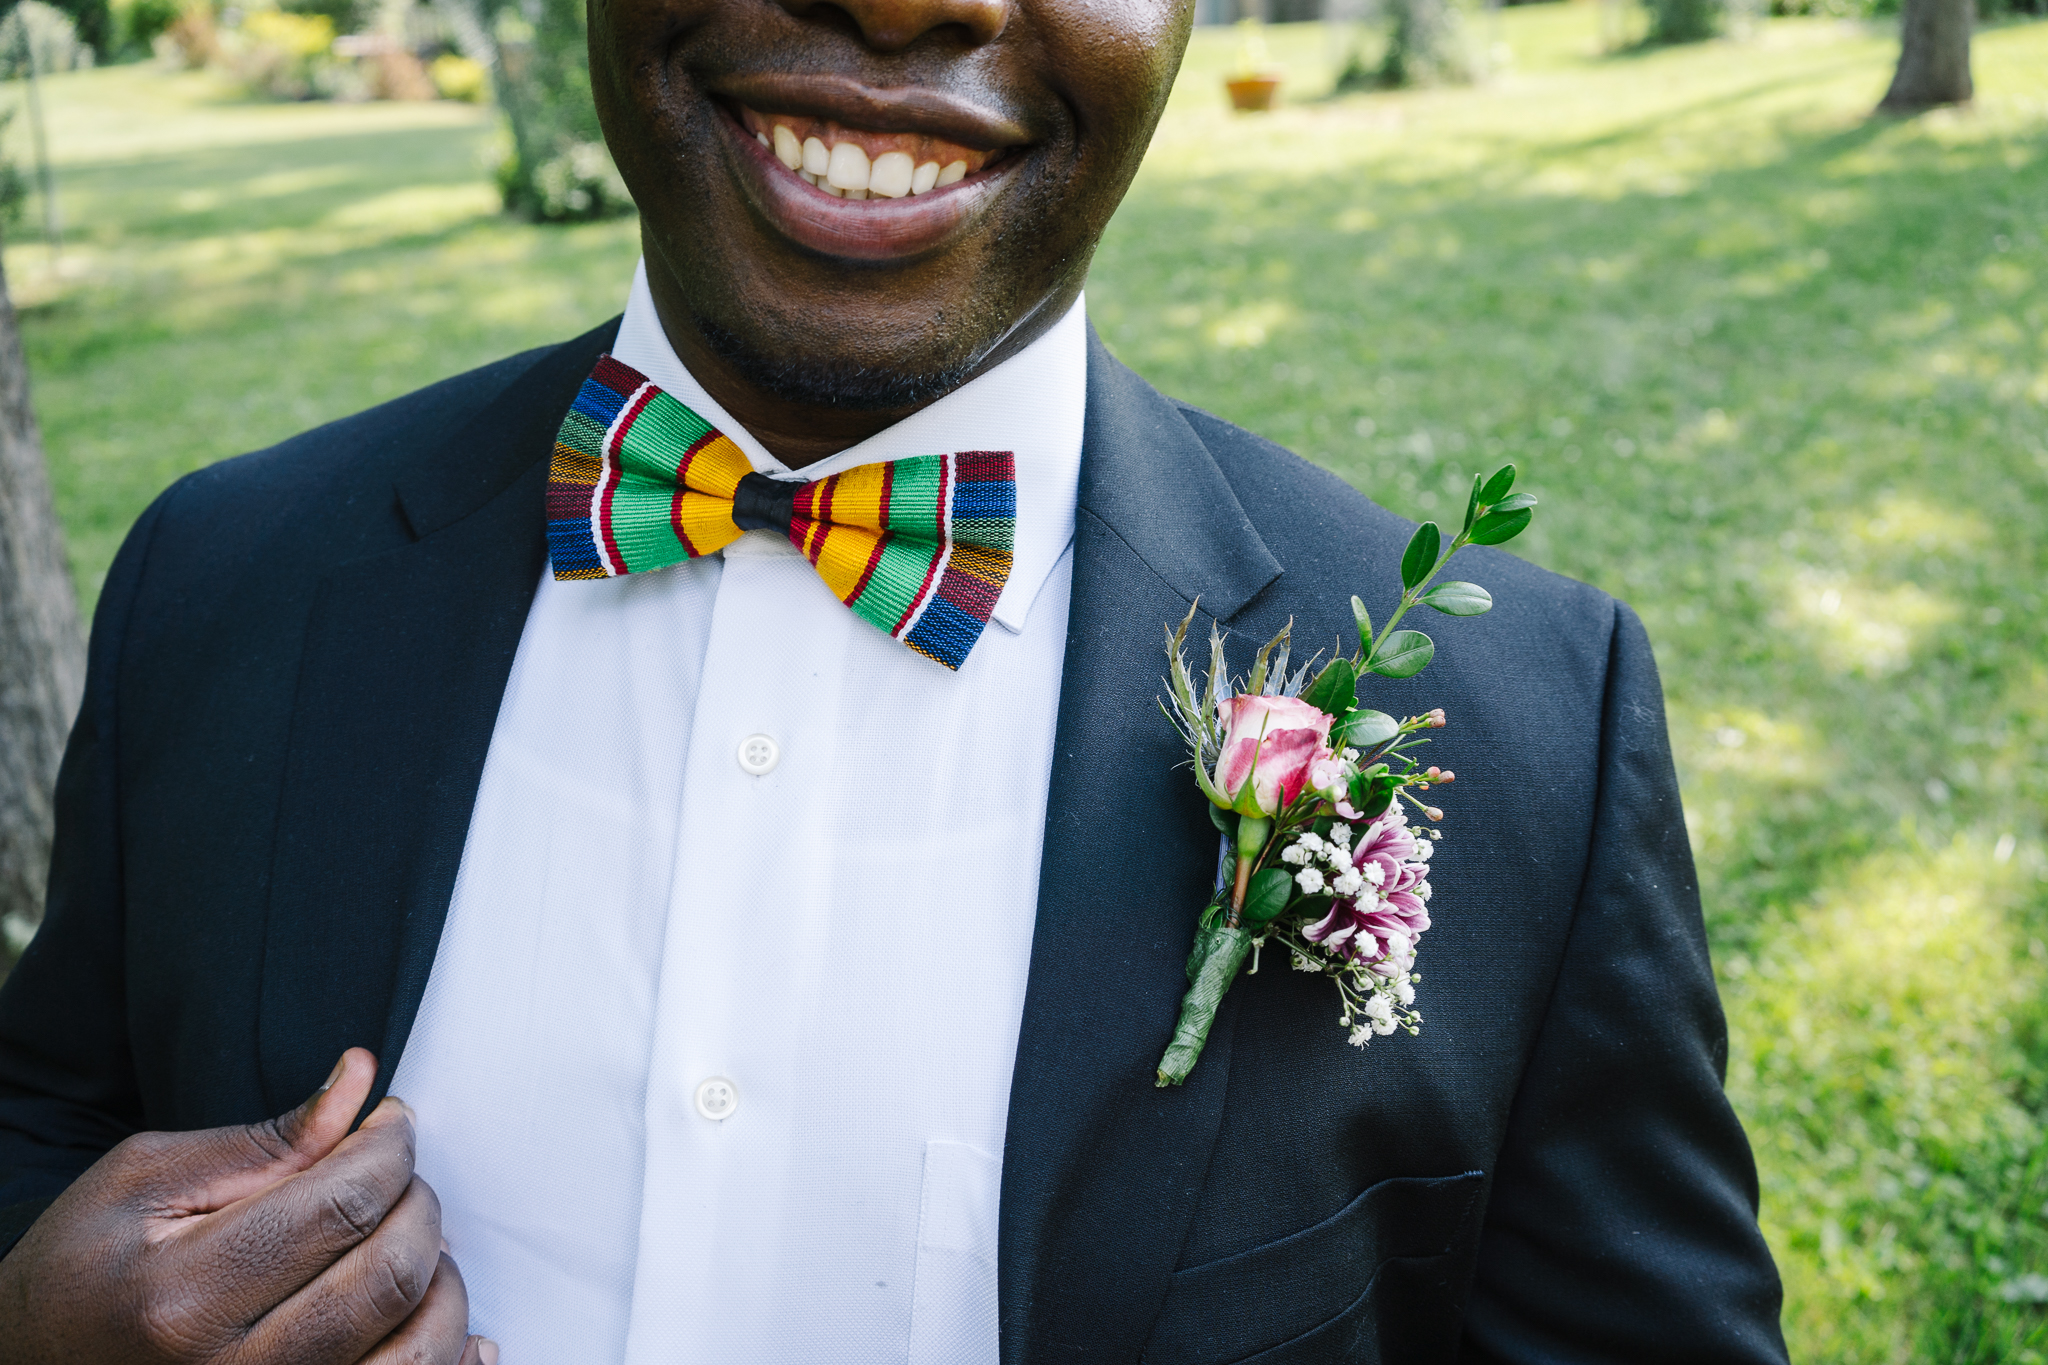 African Themed Bowties at Backyard Wedding